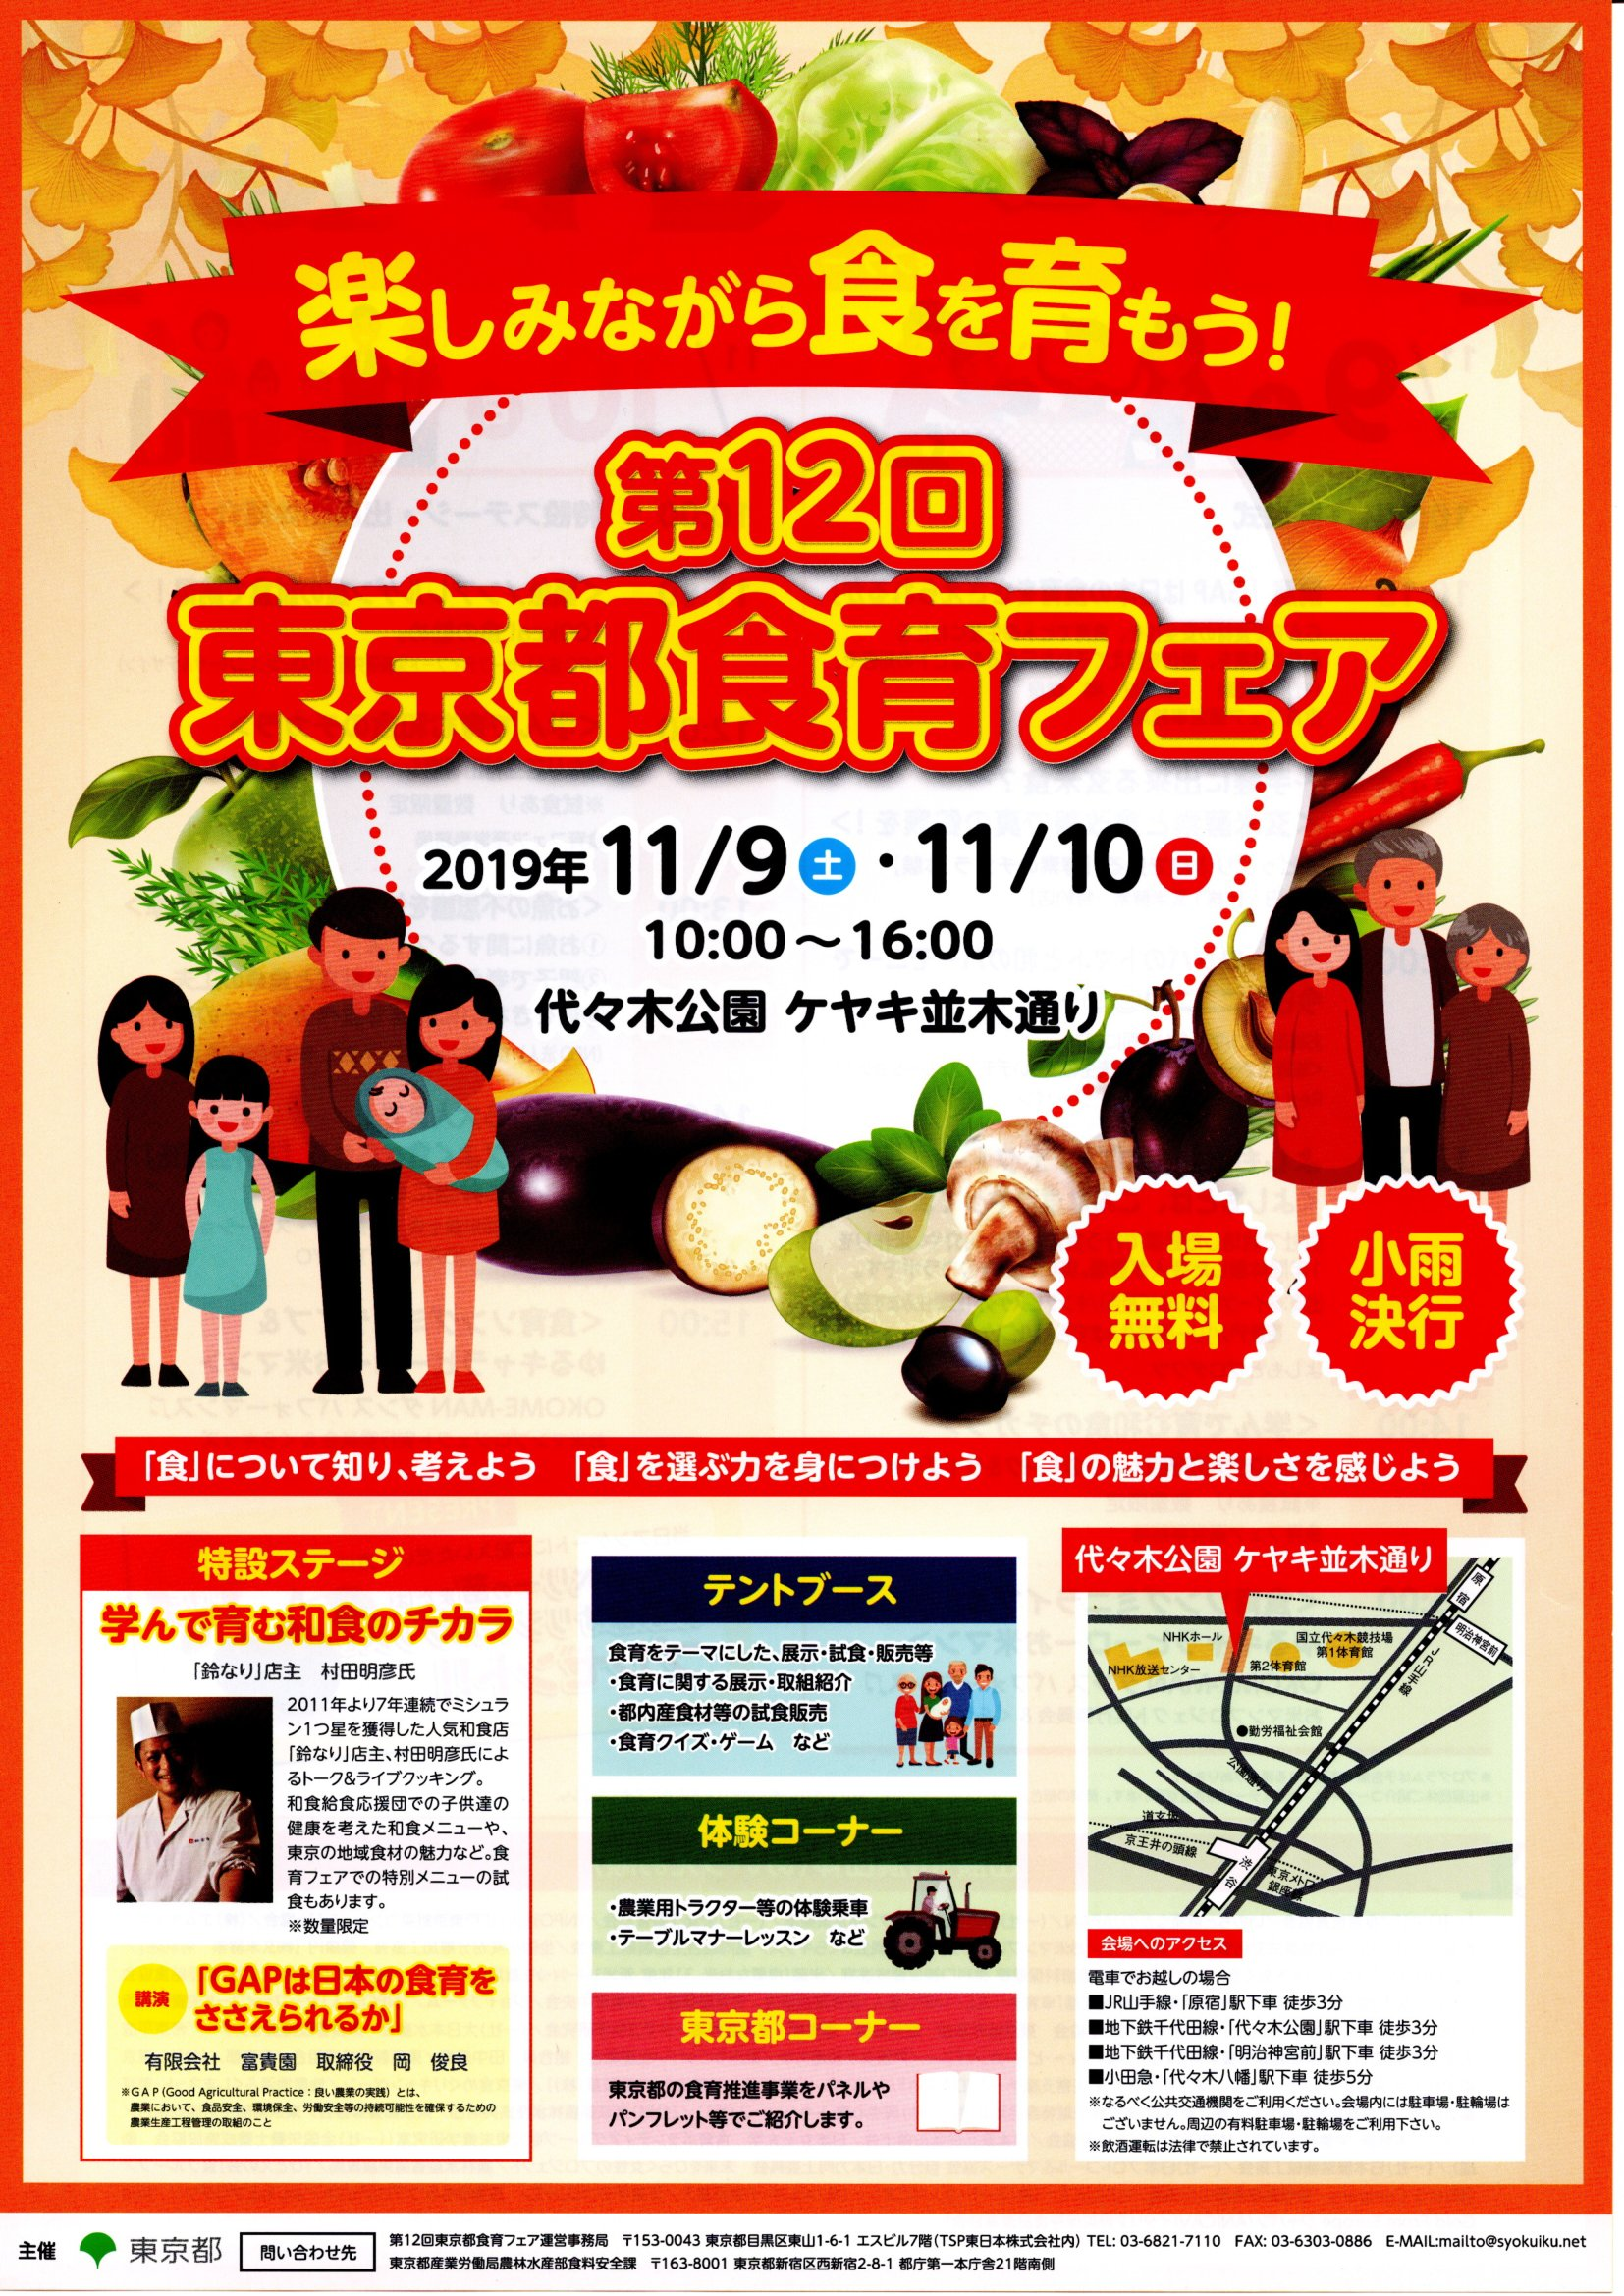 Booth exhibition at the 12th Tokyo Food Education Fair (Booth NO.45)